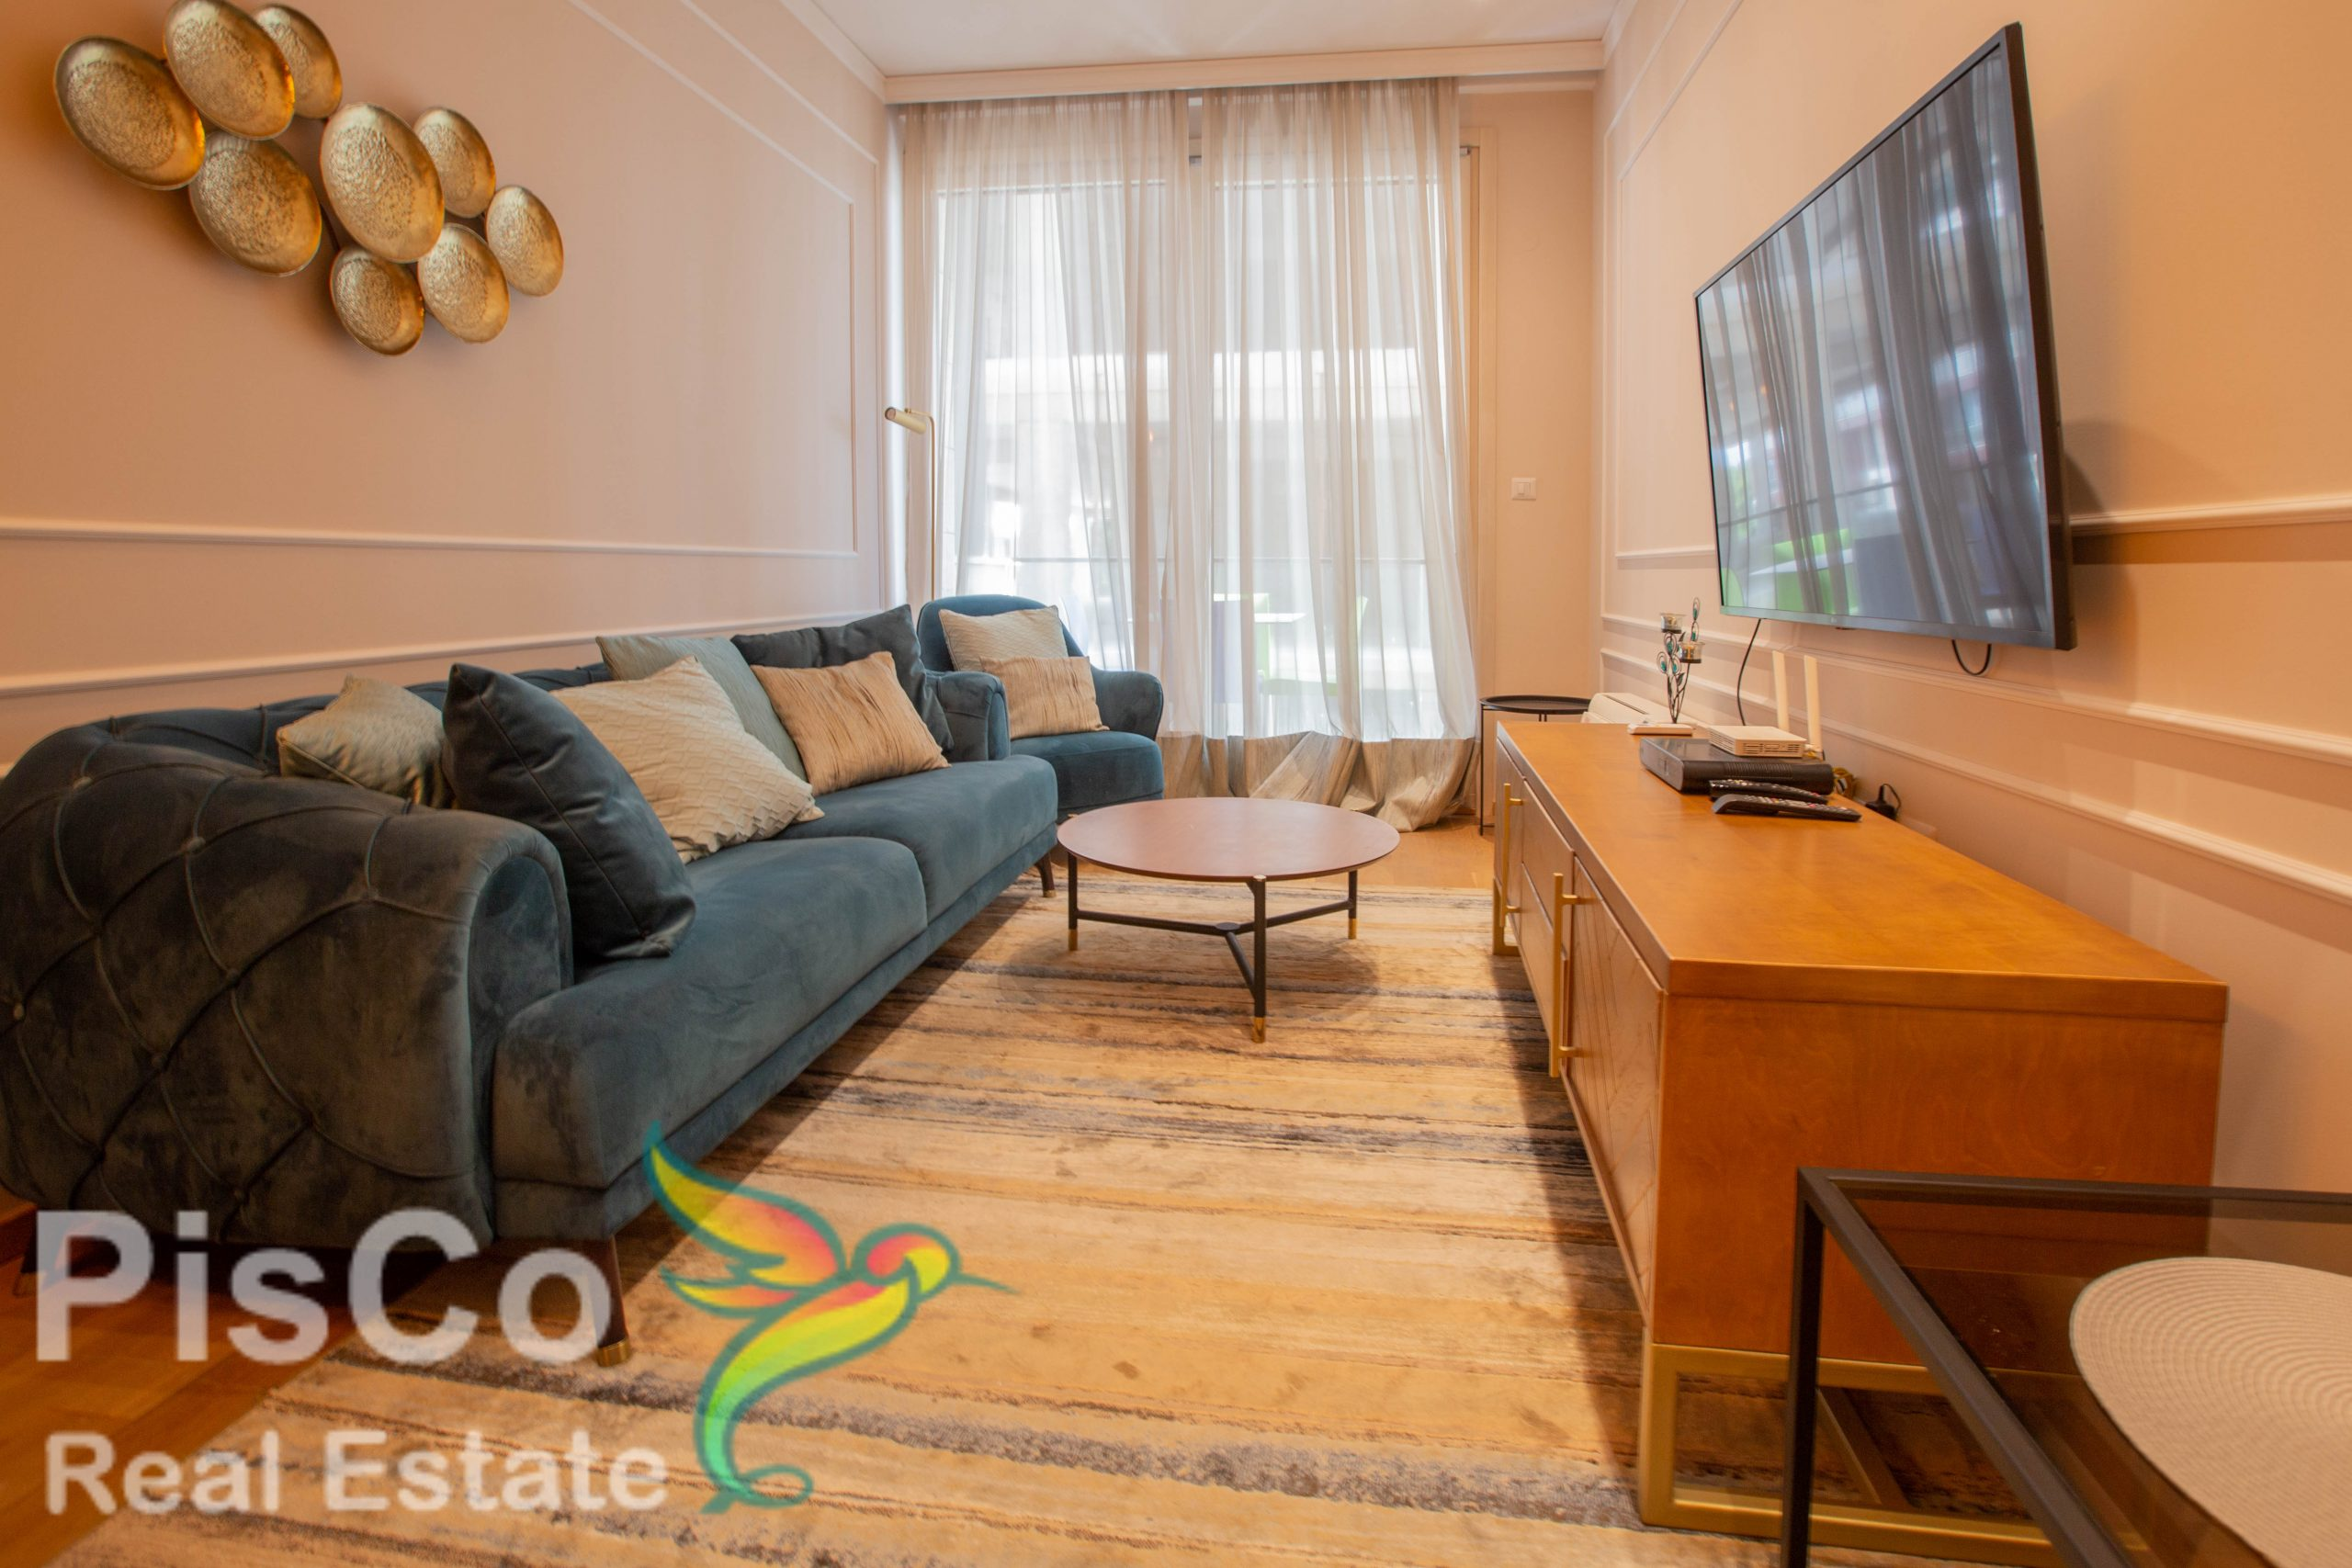 A one-bedroom lux apartment is rented in the Oasis building